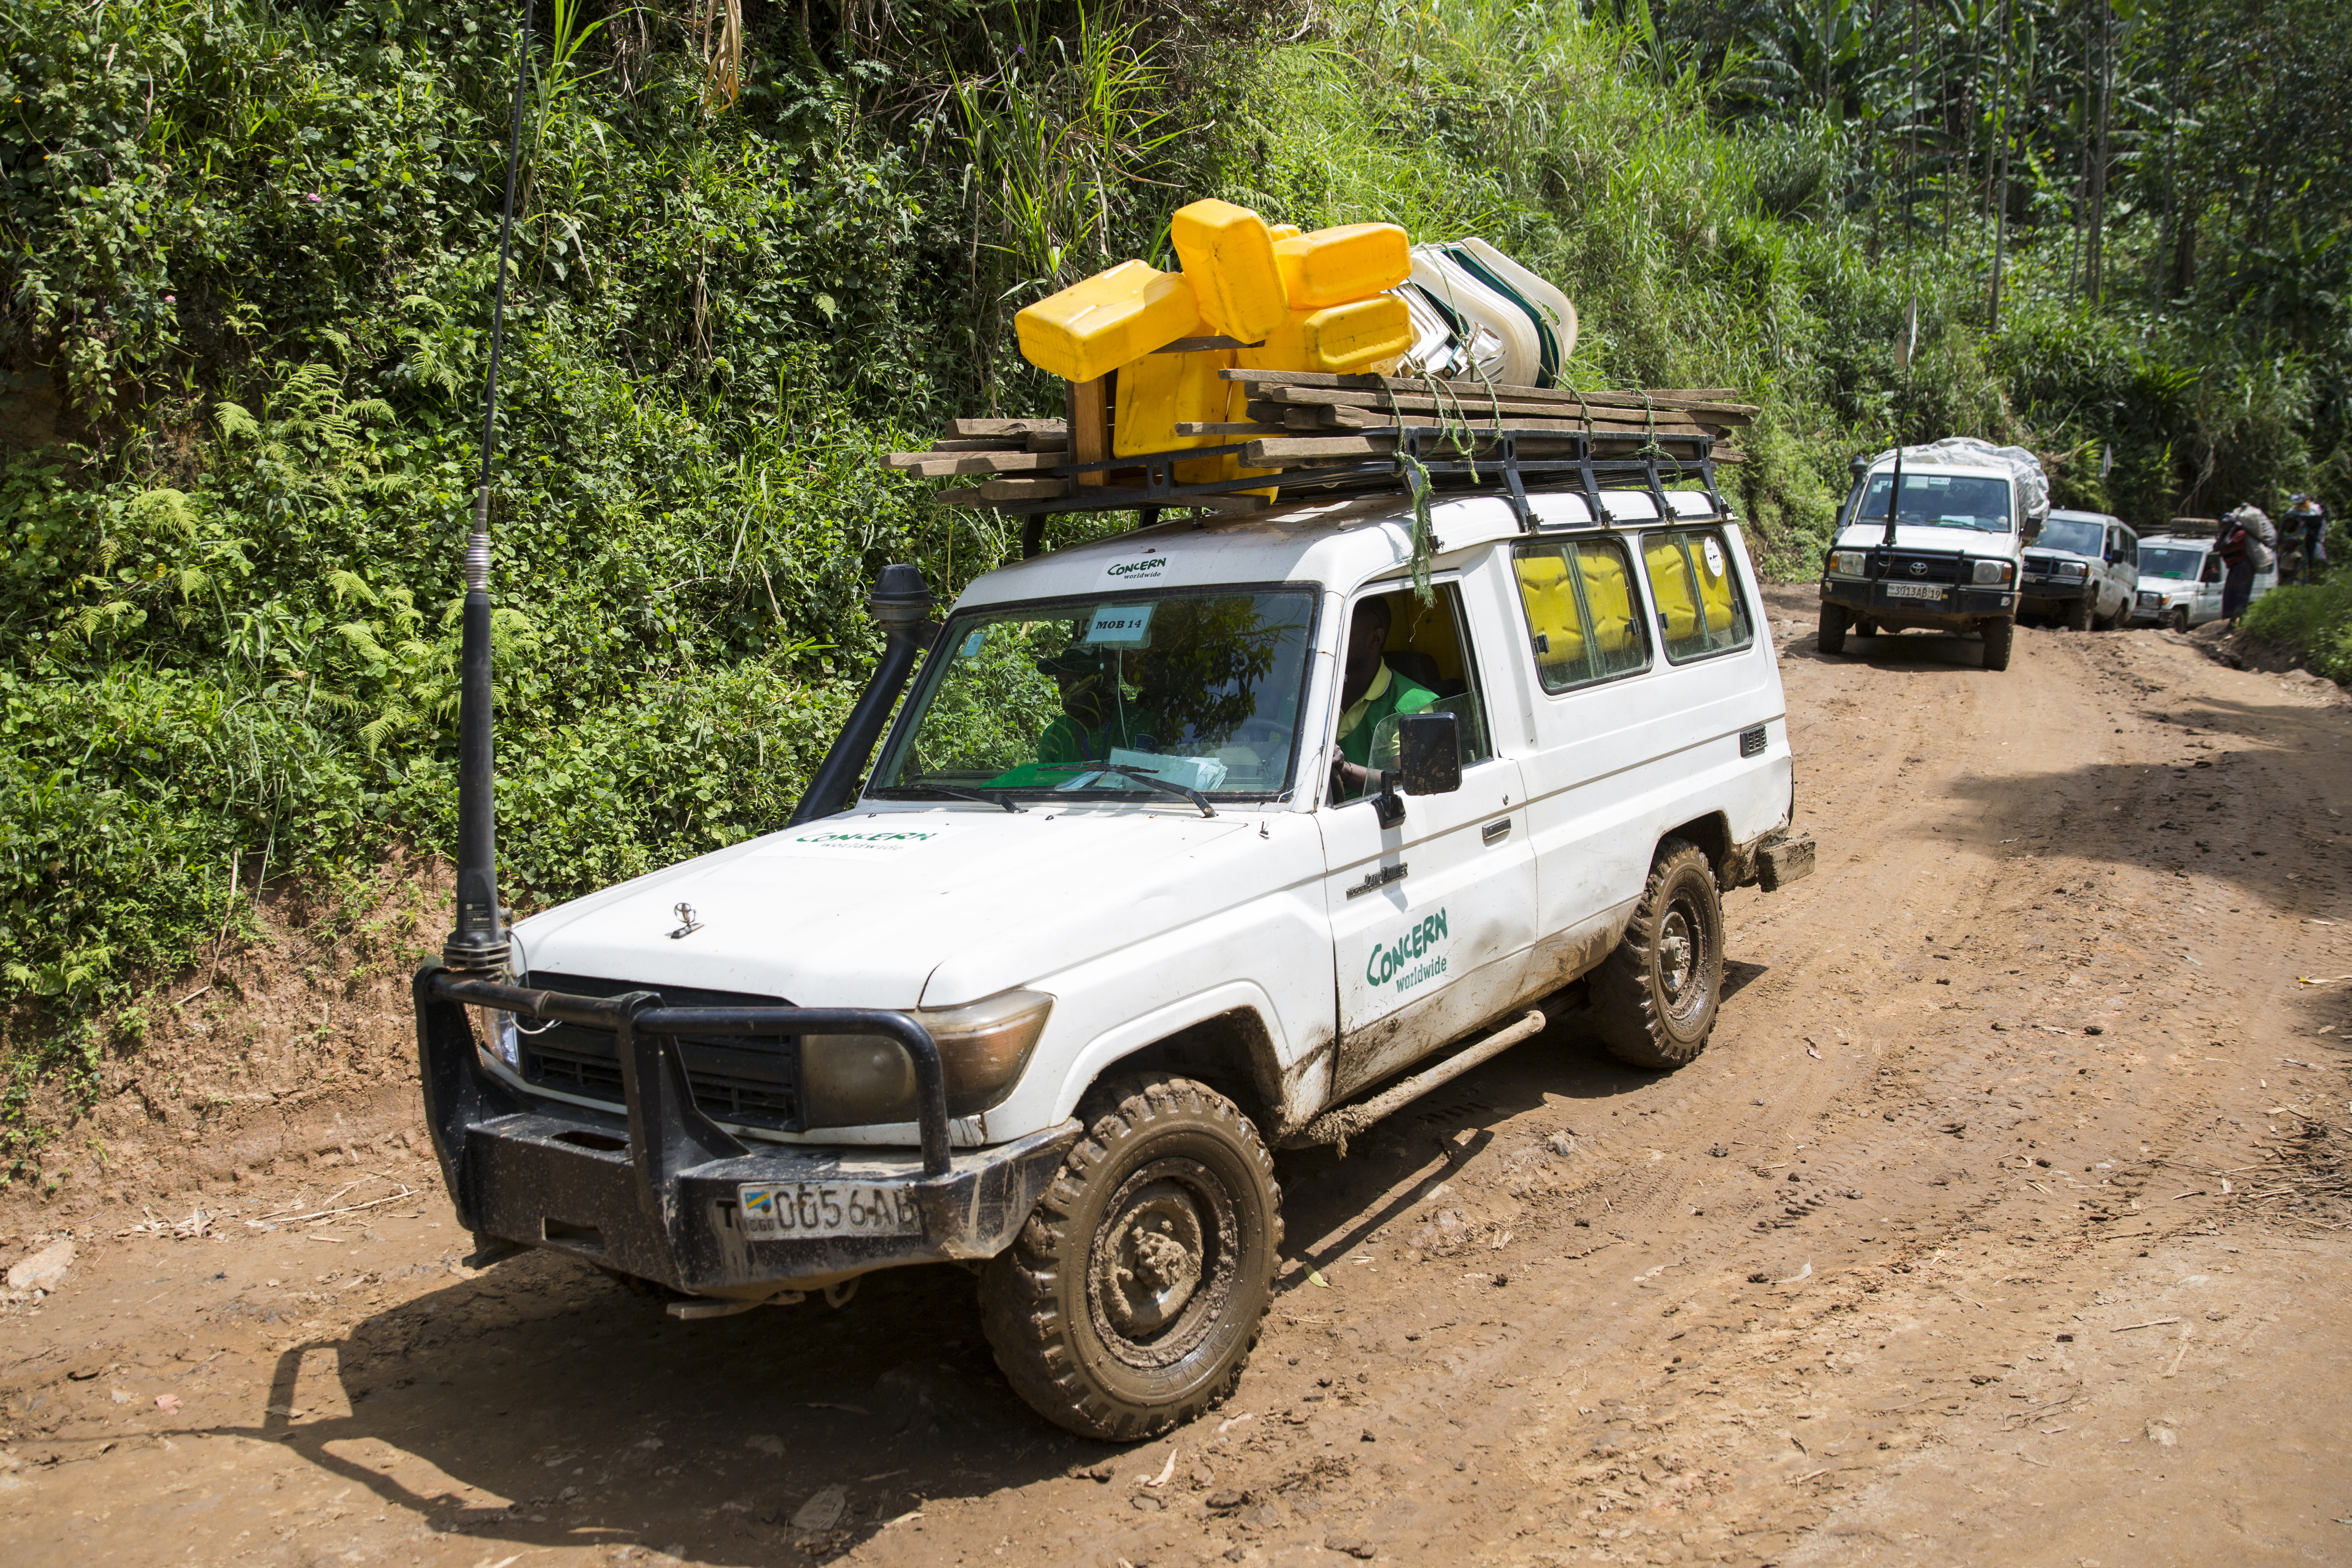 Concern Land Cruisers on a narrow dirt road